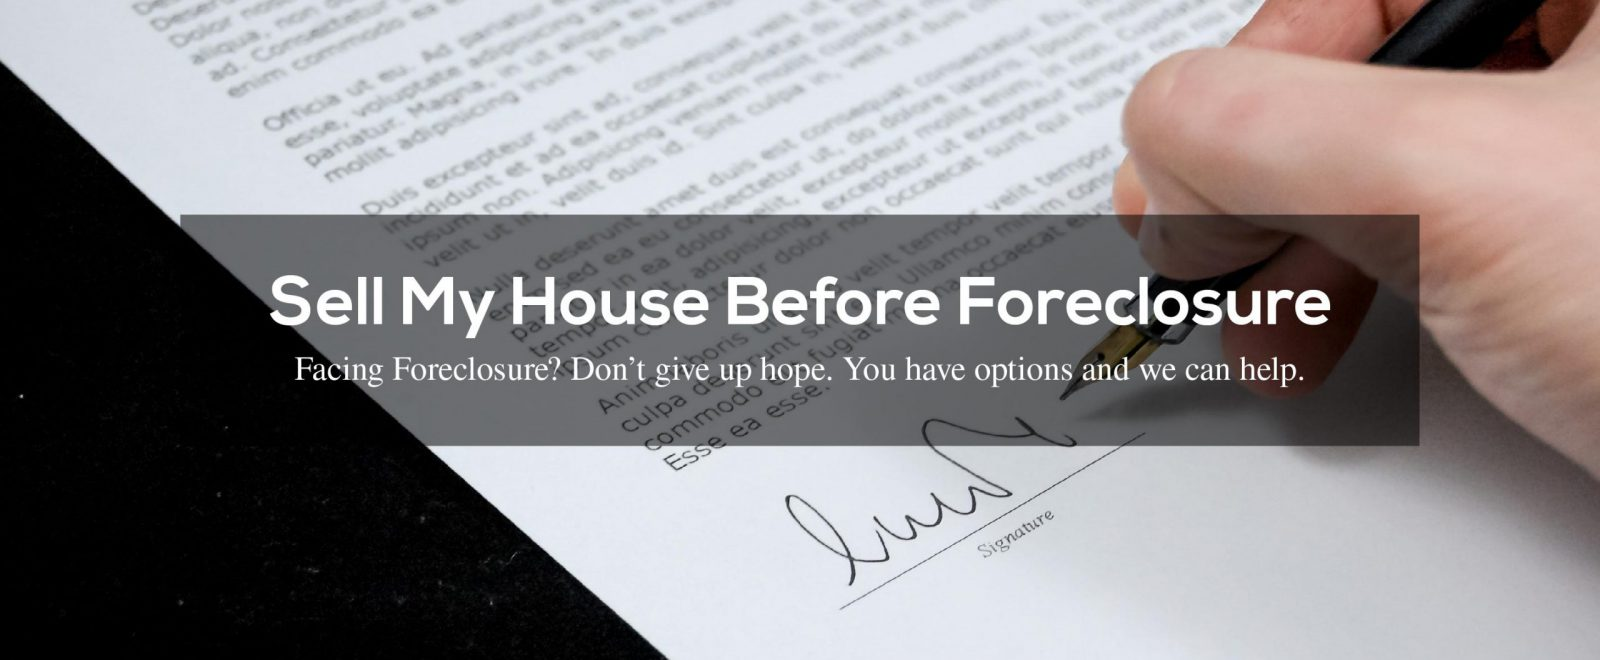 Foreclosure-South Florida Flippers 1600by660